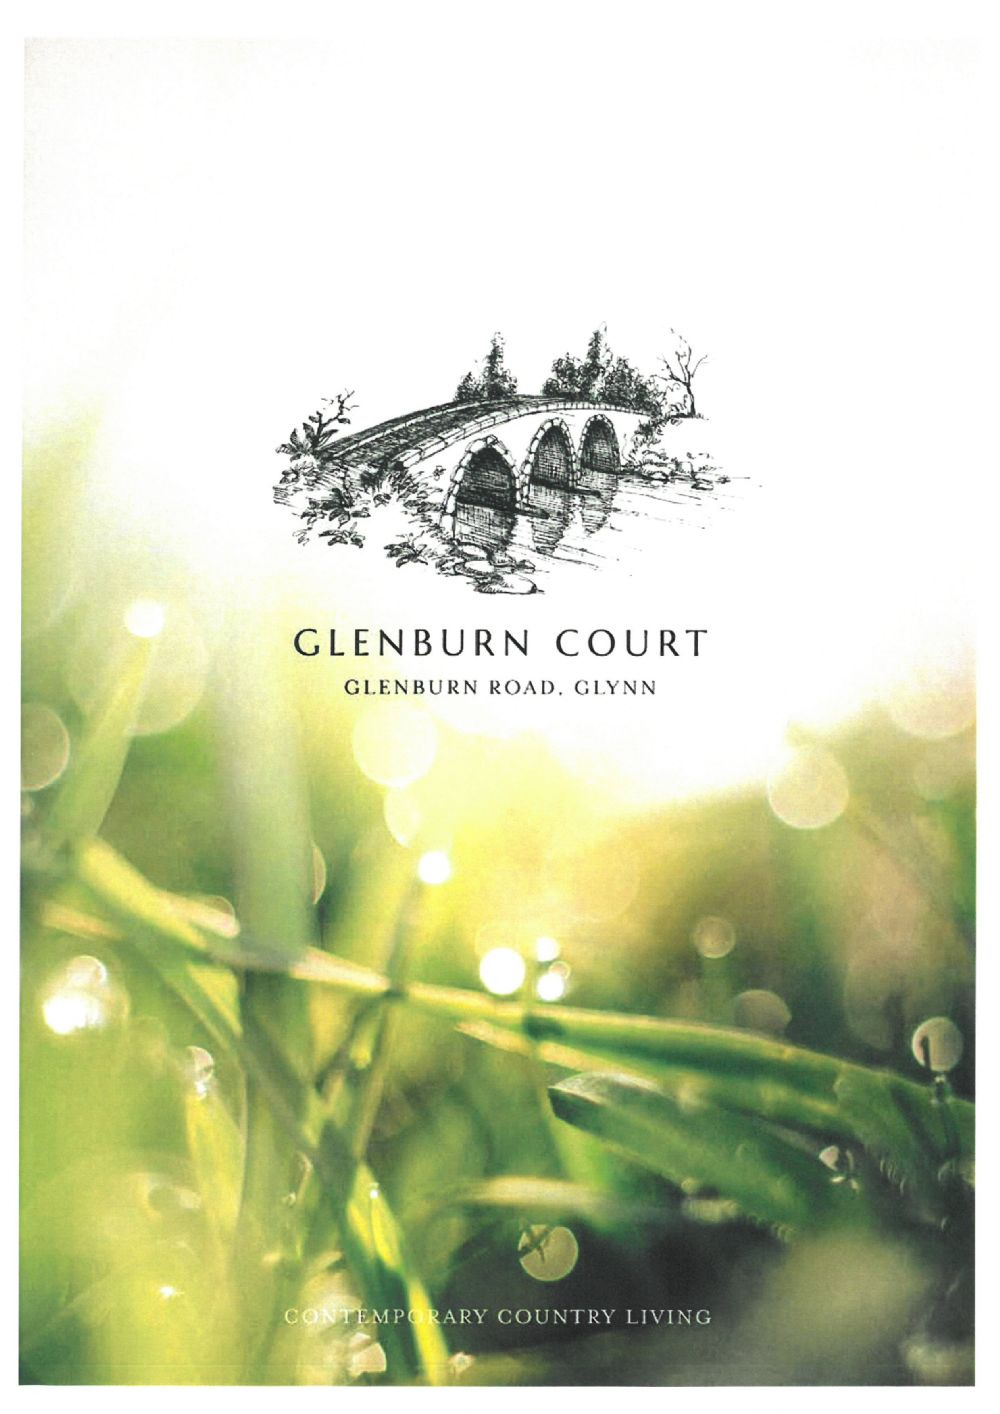 Glenburn Court